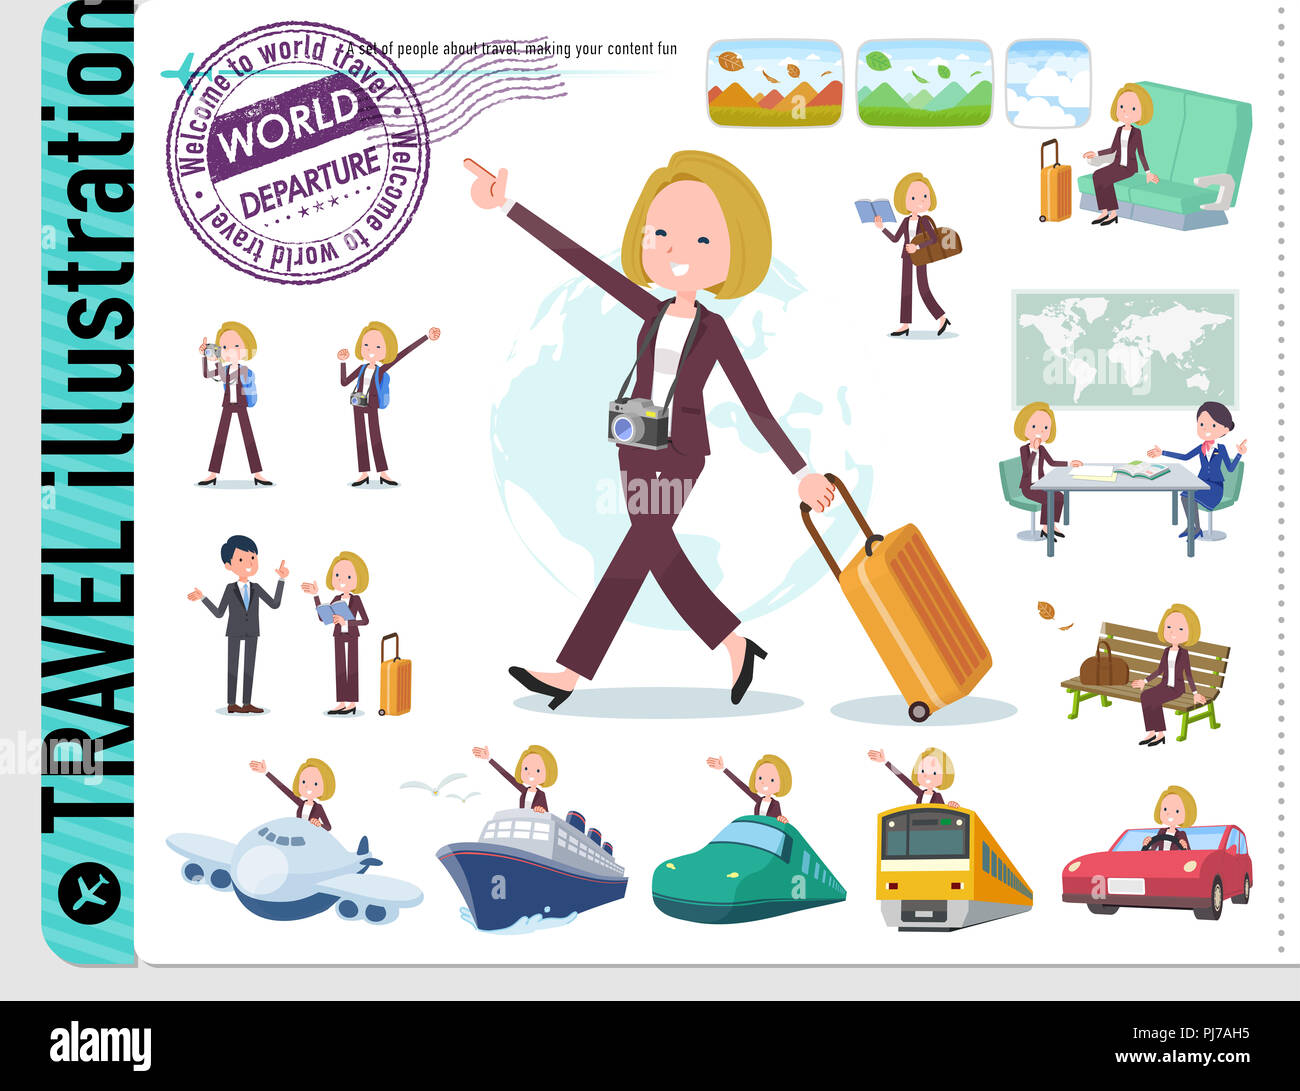 A set of women on travel.There are also vehicles such as boats and airplanes.It's vector art so it's easy to edit. - Stock Image